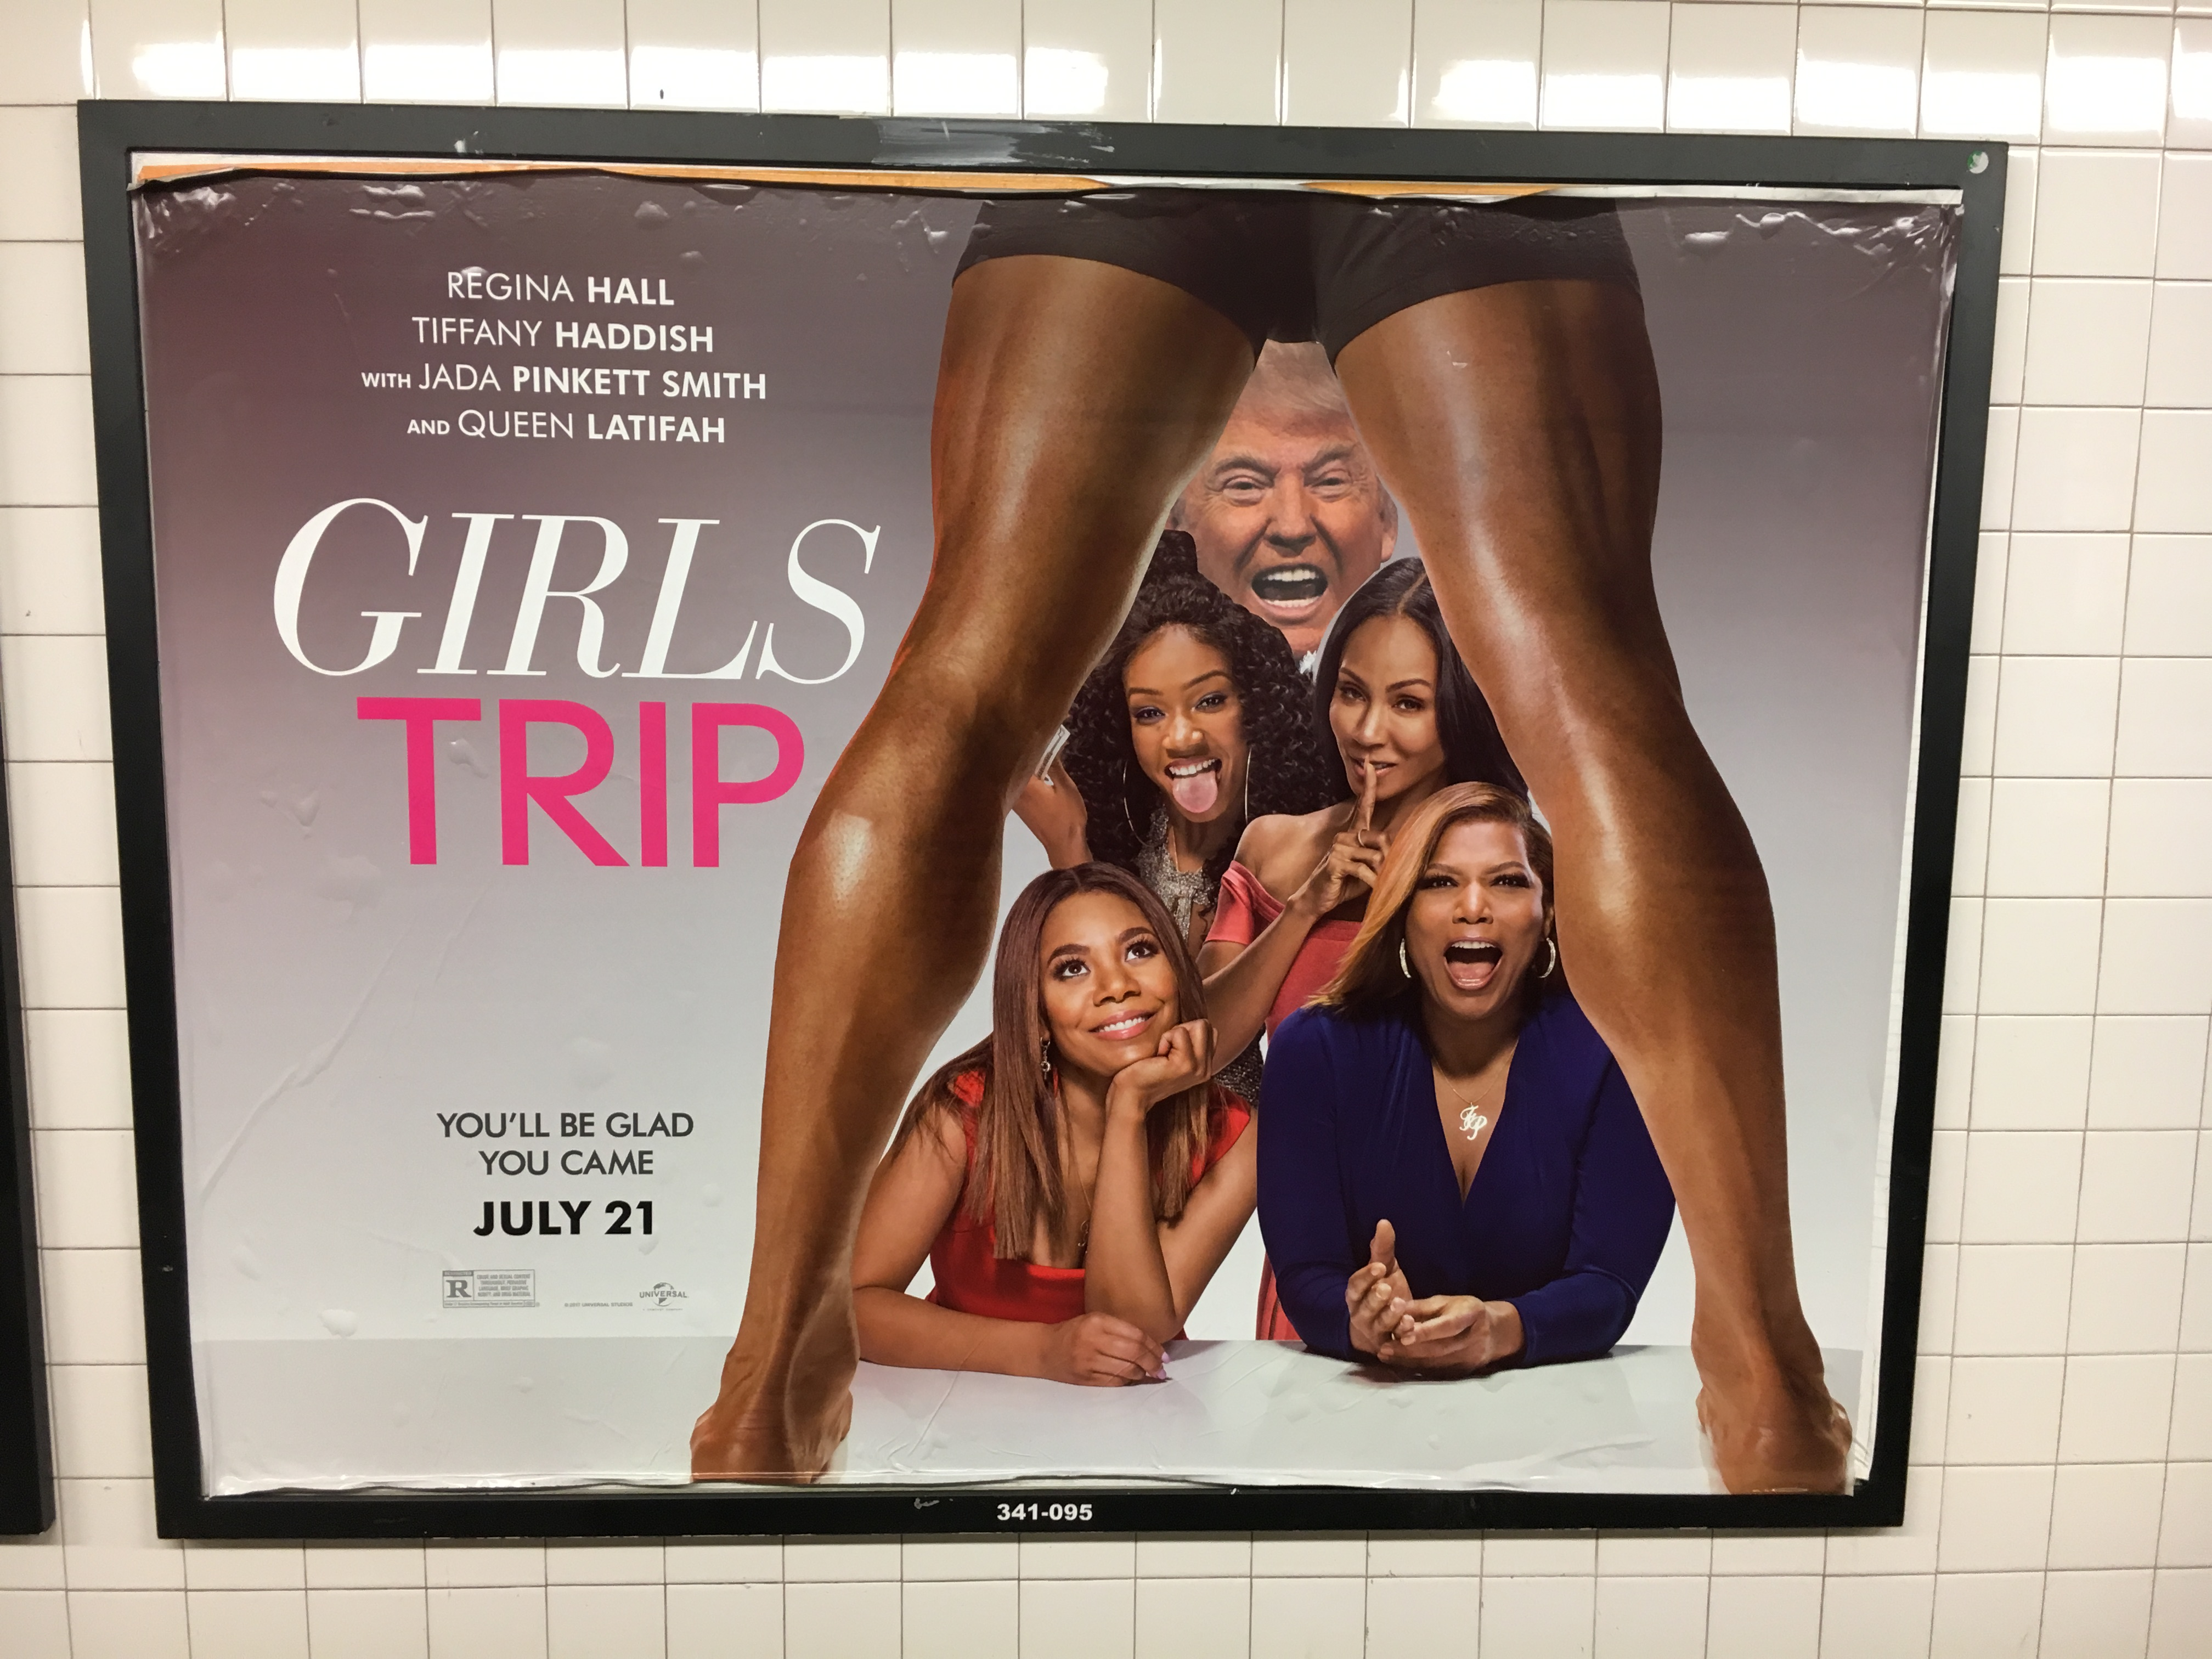 A street commentary on the sex scandals surrounding Donald Trump. A billboard advertising the movie Girls Trip in the New York City subway features Trump's face, added in by an anonymous artist.